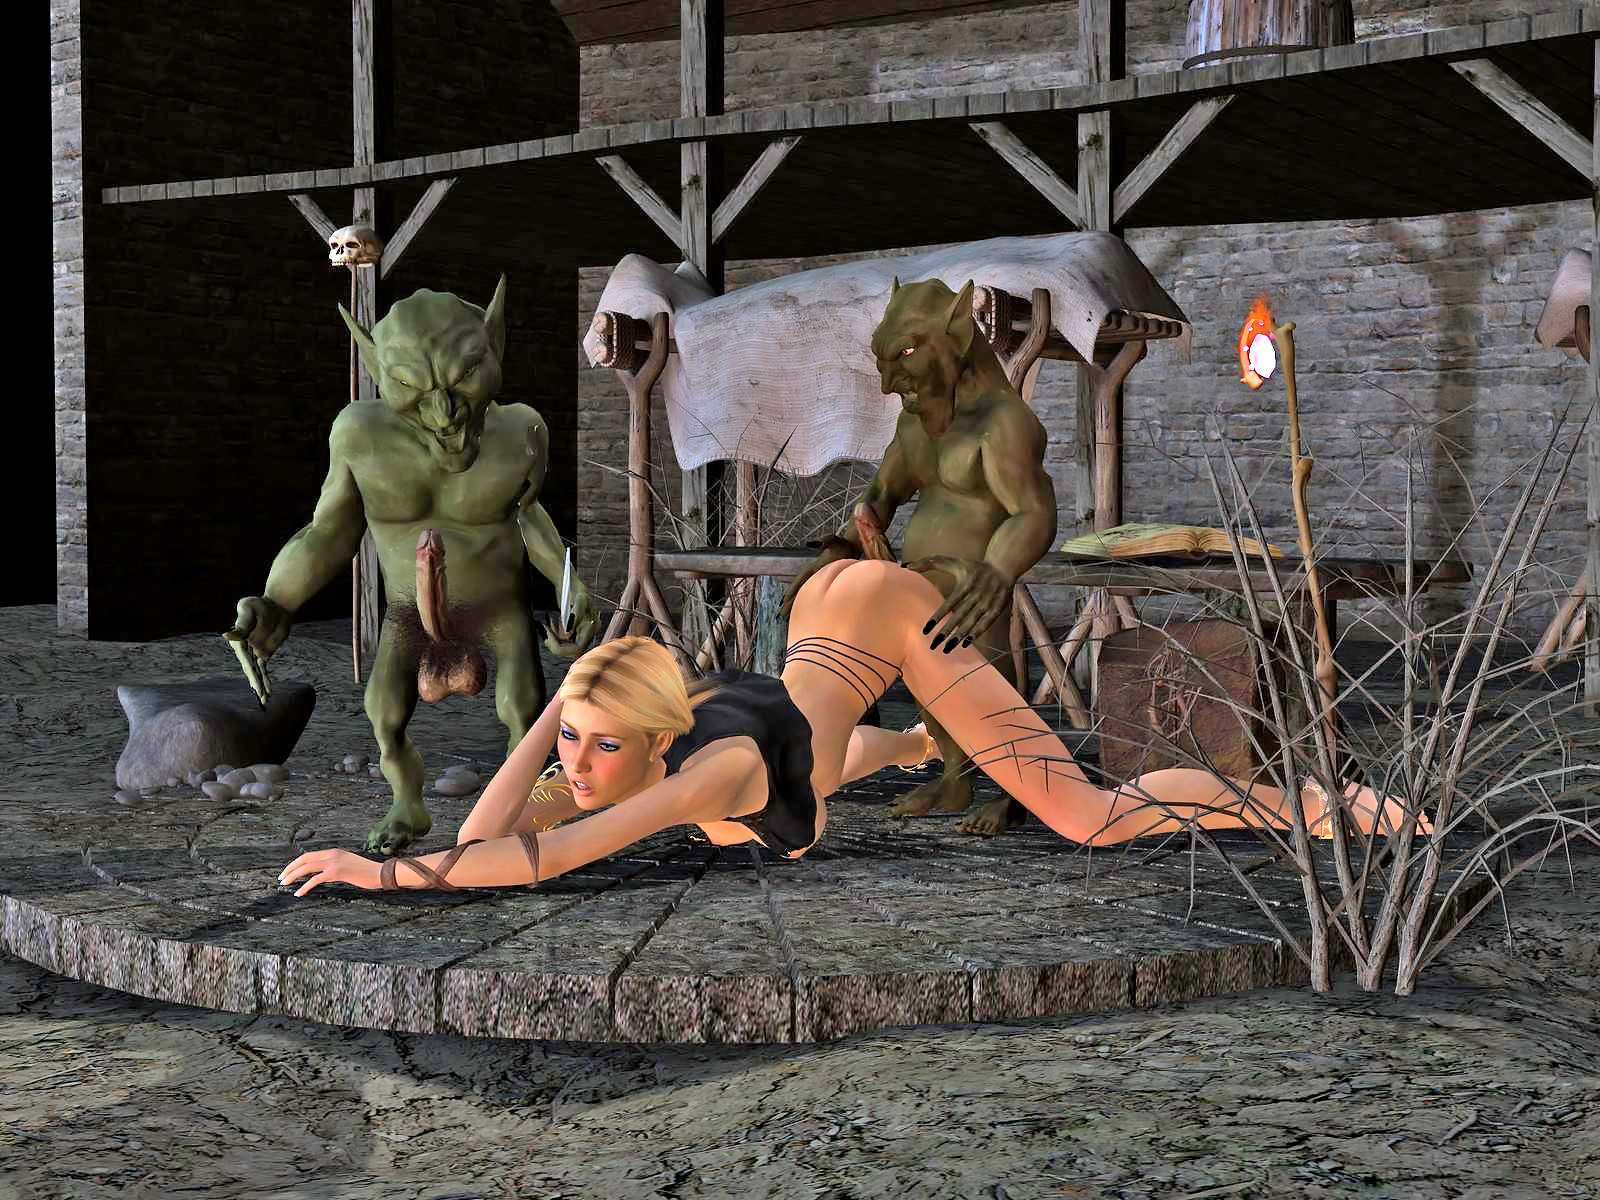 Cartoon porn with monsters and goblins sexual photo